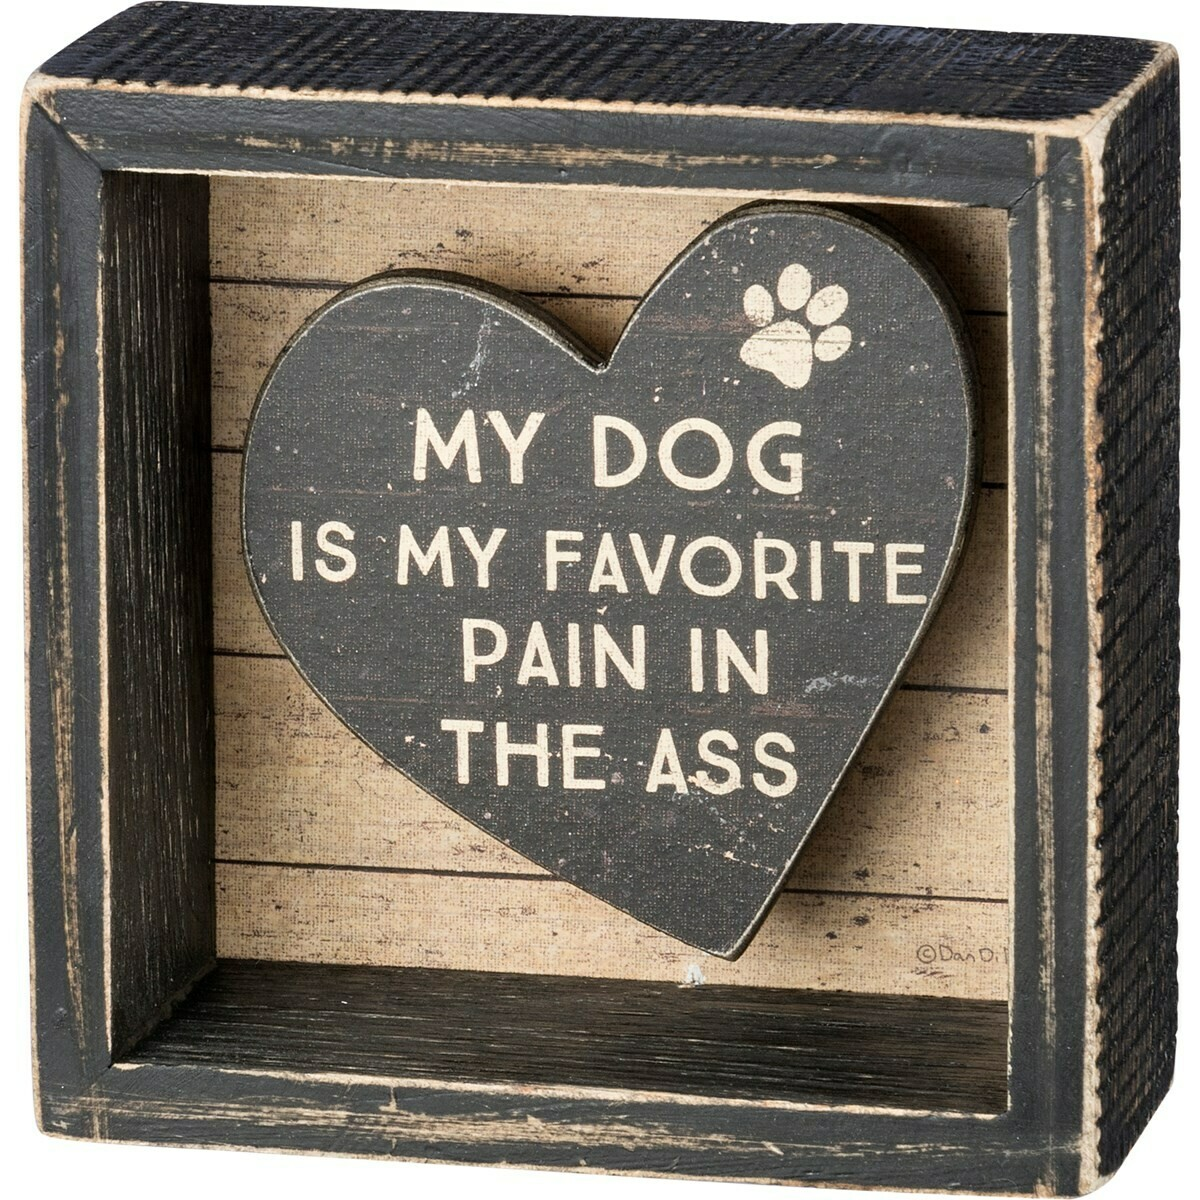 Inset Wood Box Sign: 'Dog is Favorite Pain in the Ass'